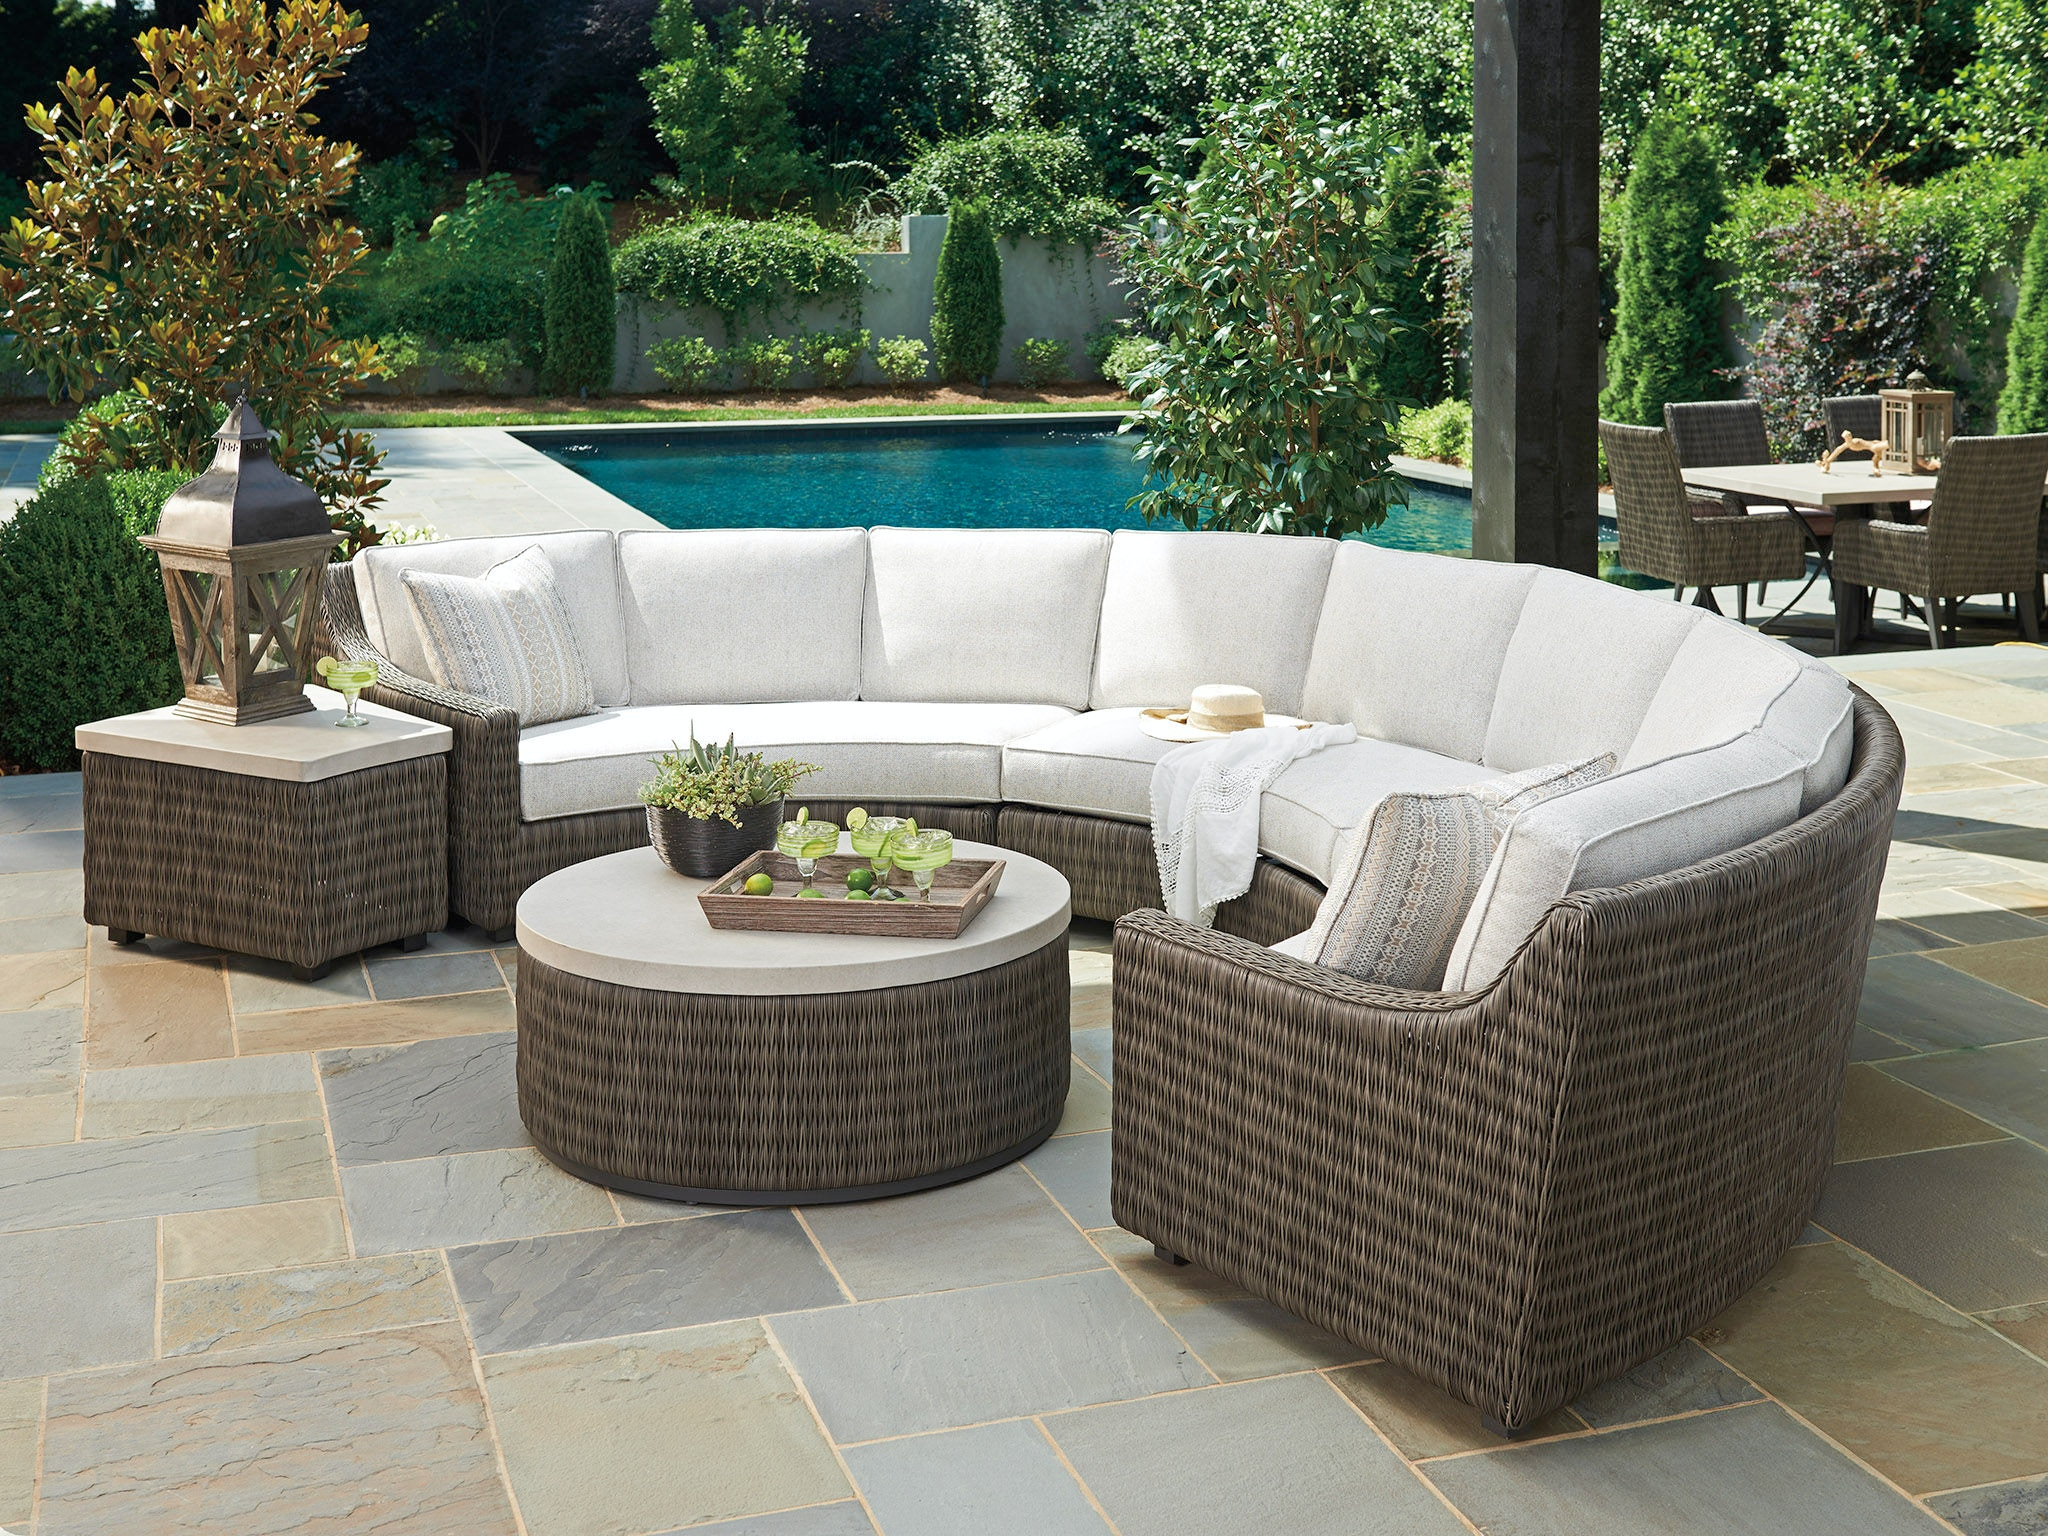 Bon Tommy Bahama Outdoor Living Curved Sectional Left Arm Facing Sofa 3900 82LB